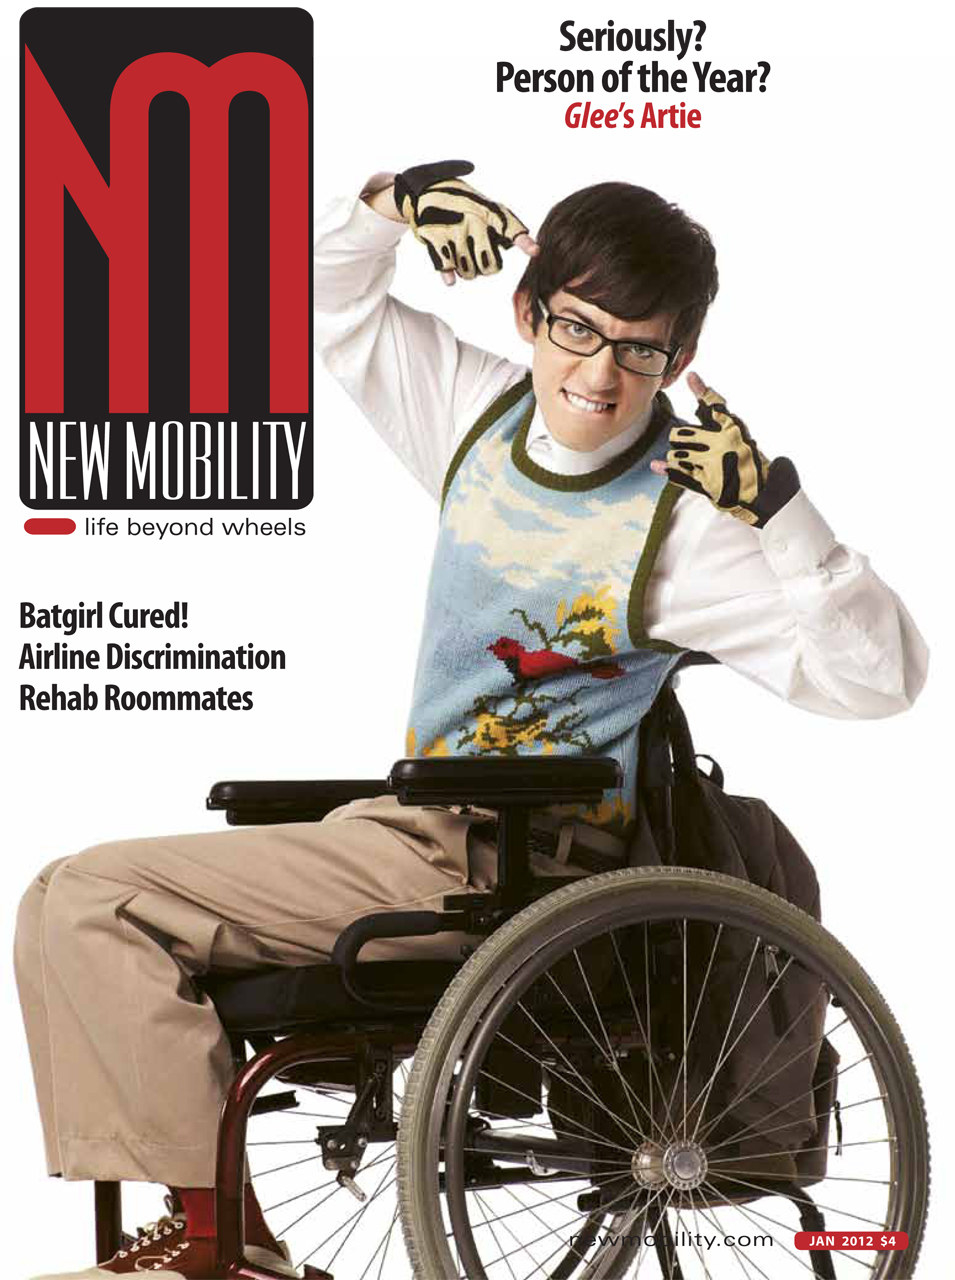 the revelation and representation of disability Concerns about media representation of disability  diversity in media, persons with disabilities, stereotyping media coverage of disability issues: persons with .